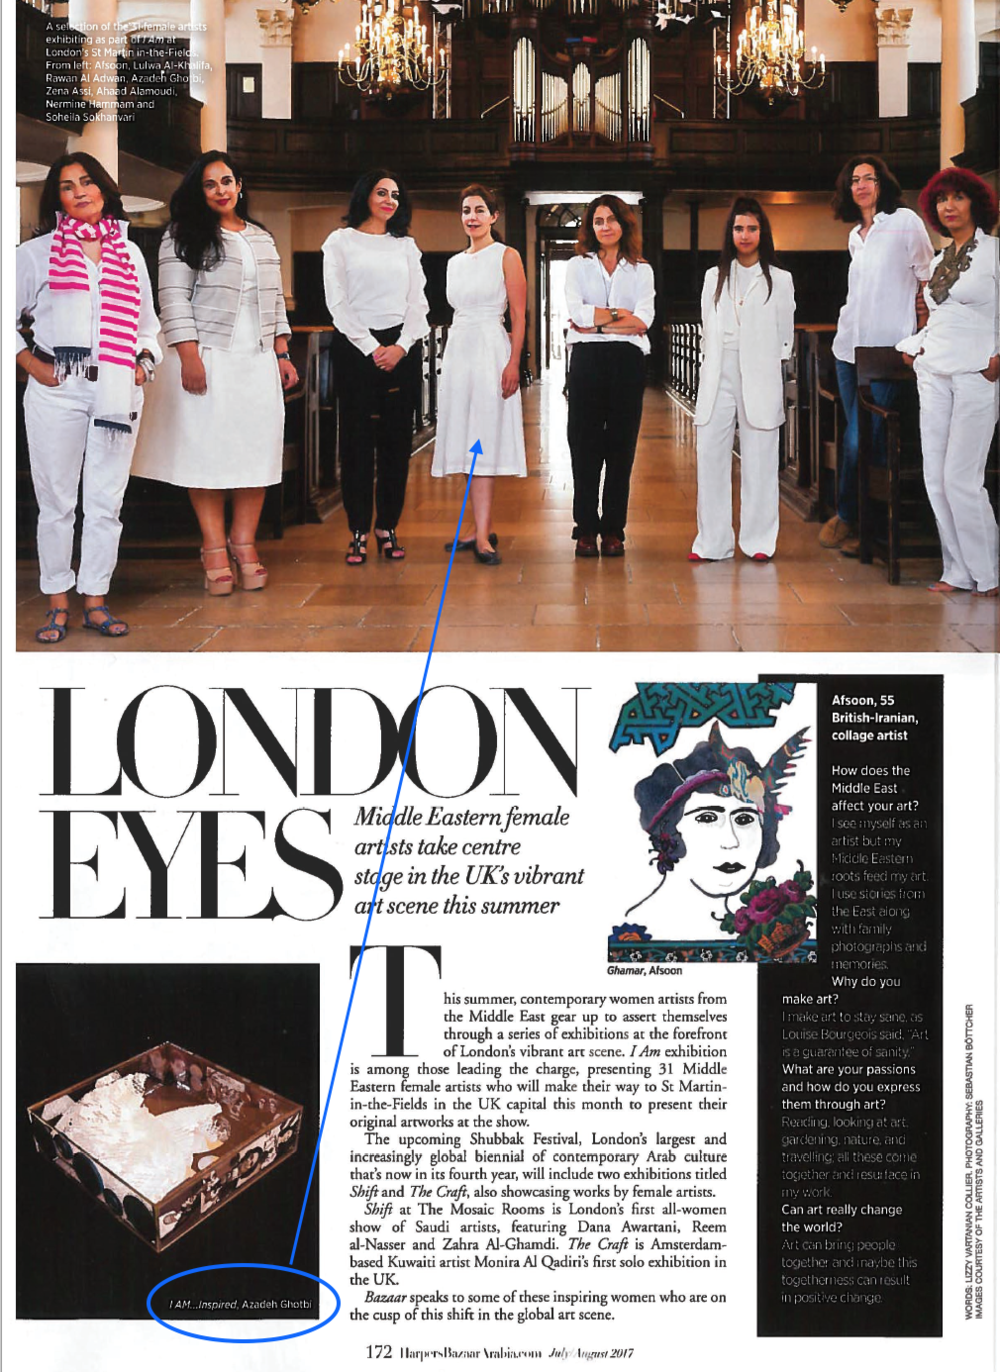 Link to article:  http://www.harpersbazaararabia.com/art/exhibitions/female-artists-showing-in-london